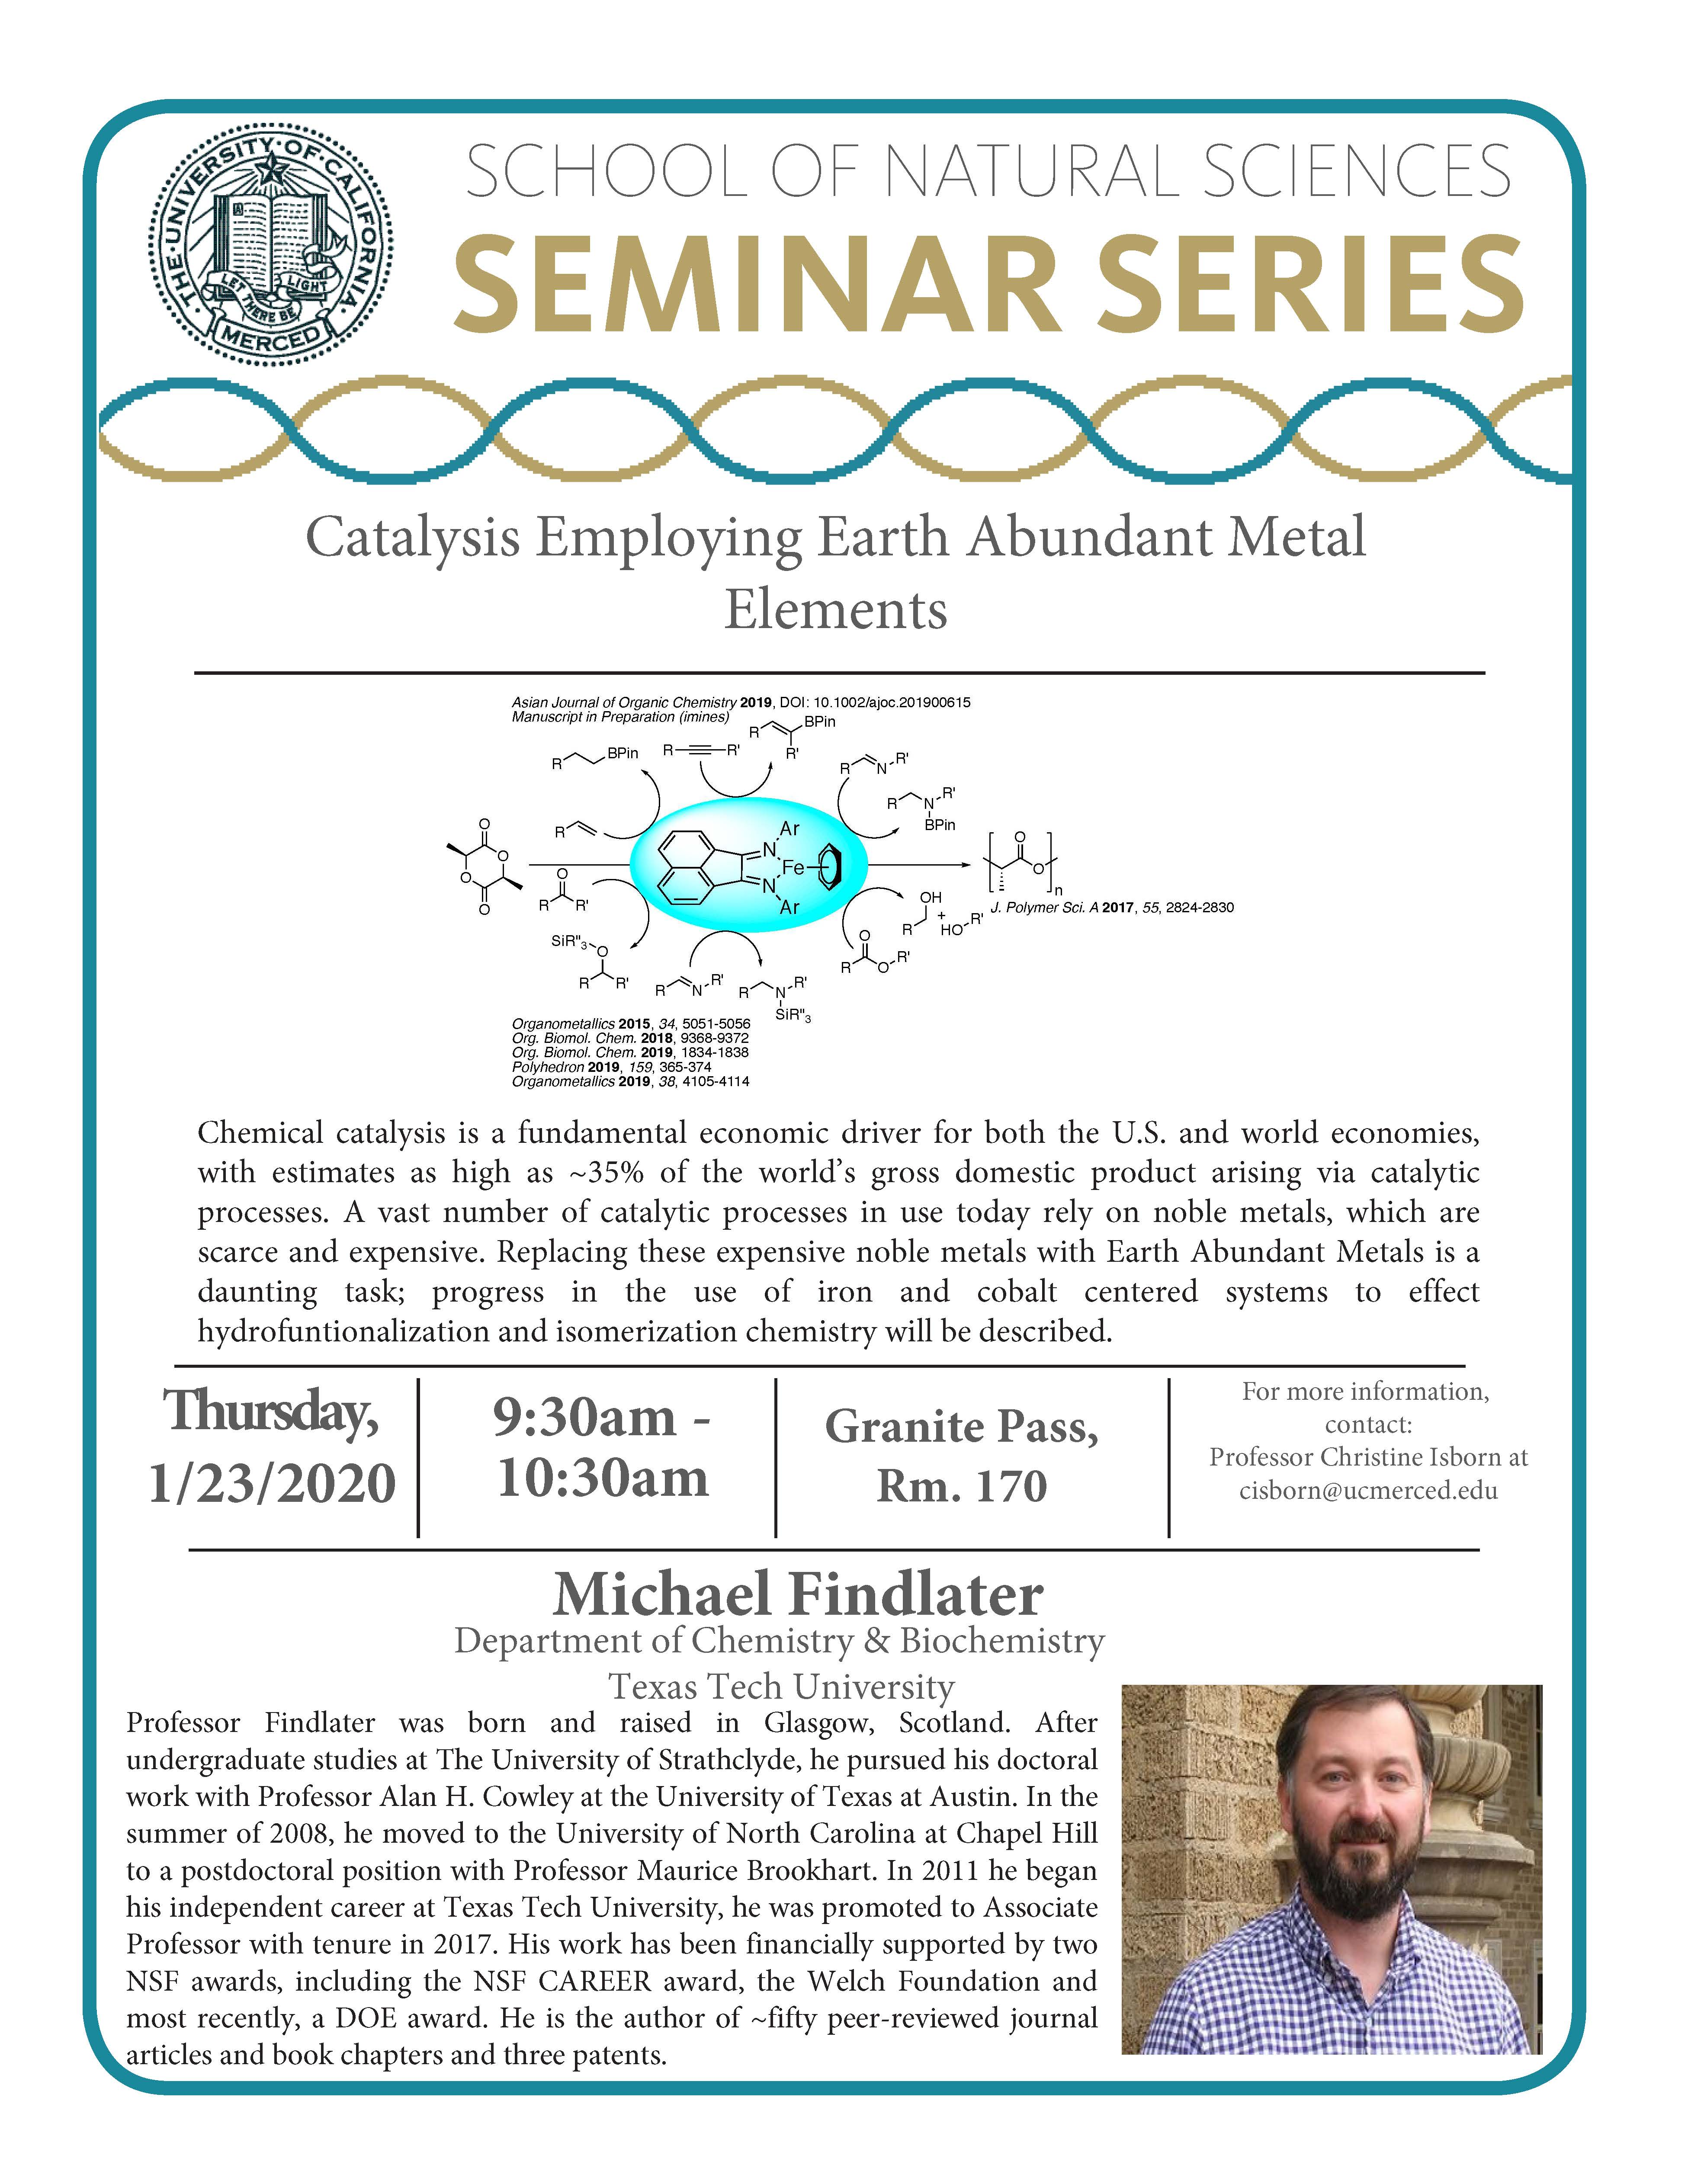 CCB Seminar for Dr.Michael Findlater